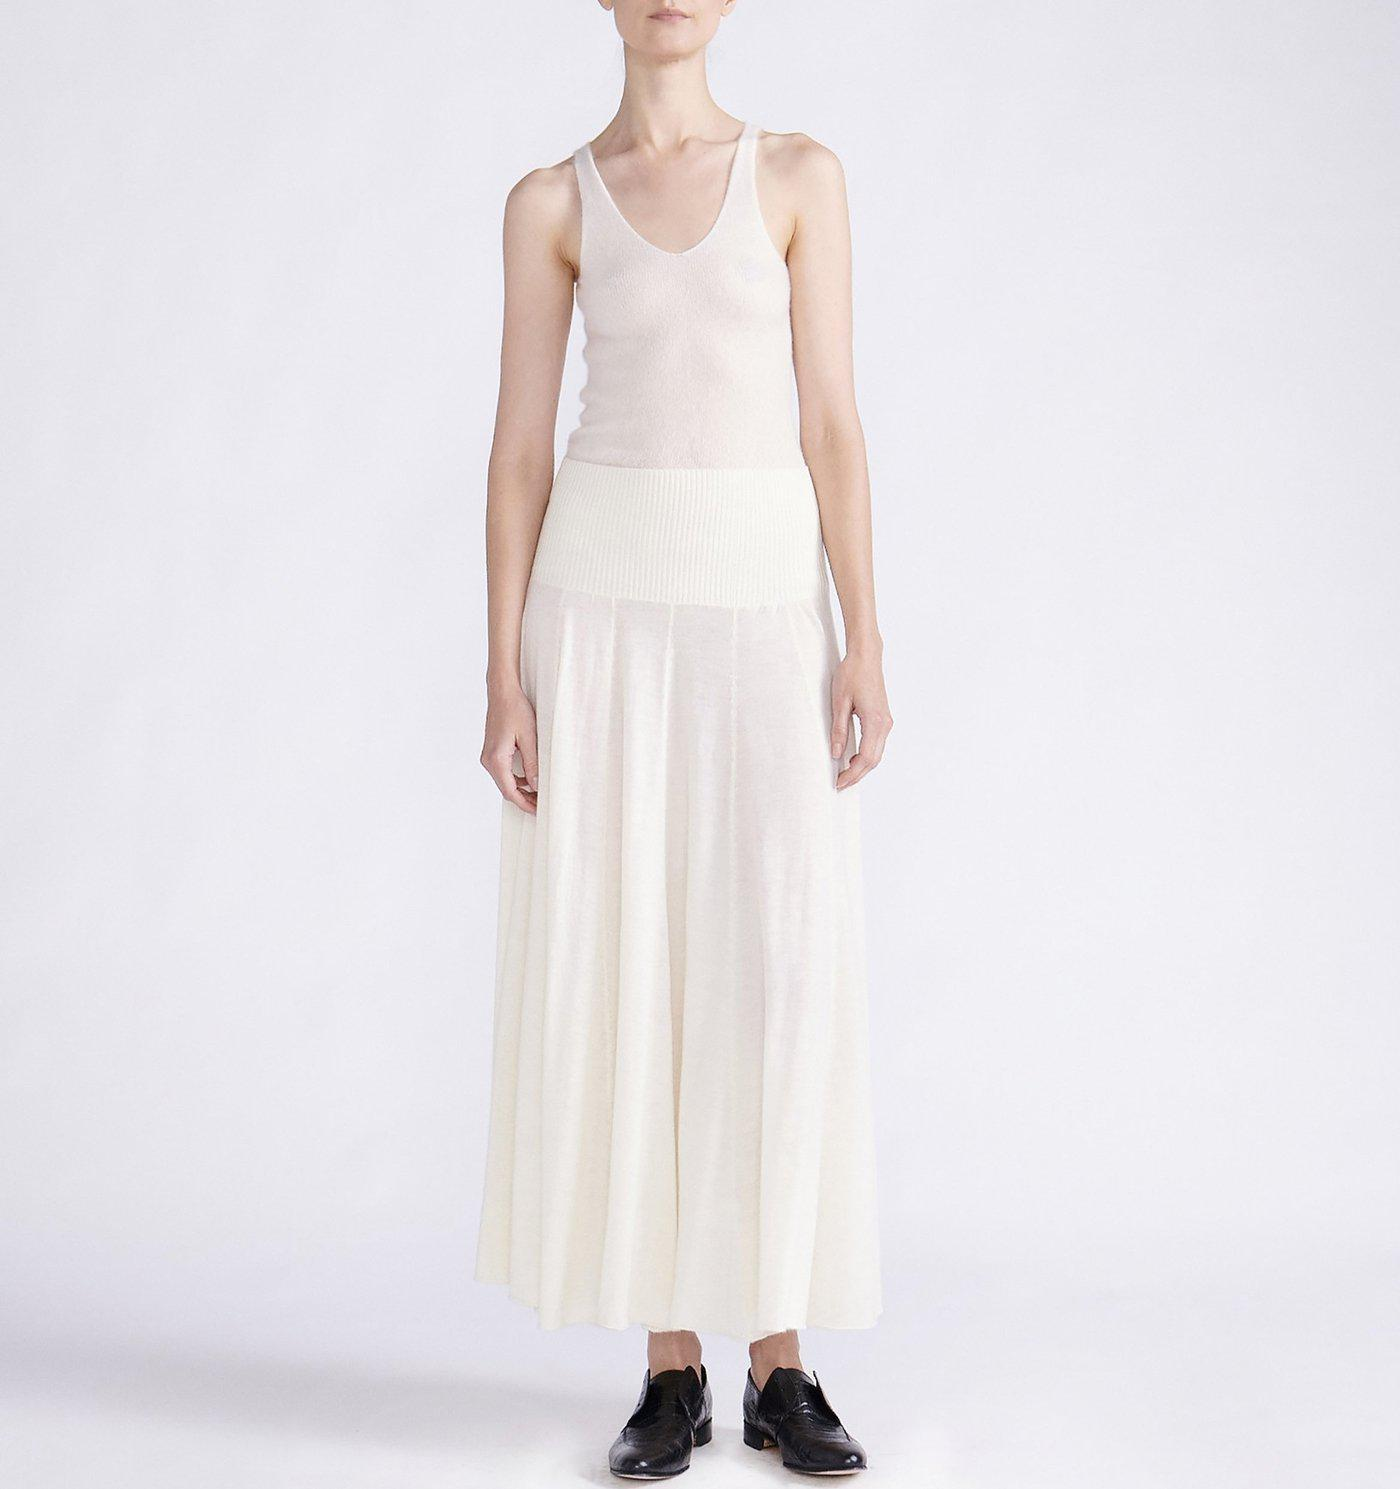 RYAN ROCHE STRETCH CASHMERE MIDI KNIT SKIRT DRESS WITH FRONT AND BACK PANELS